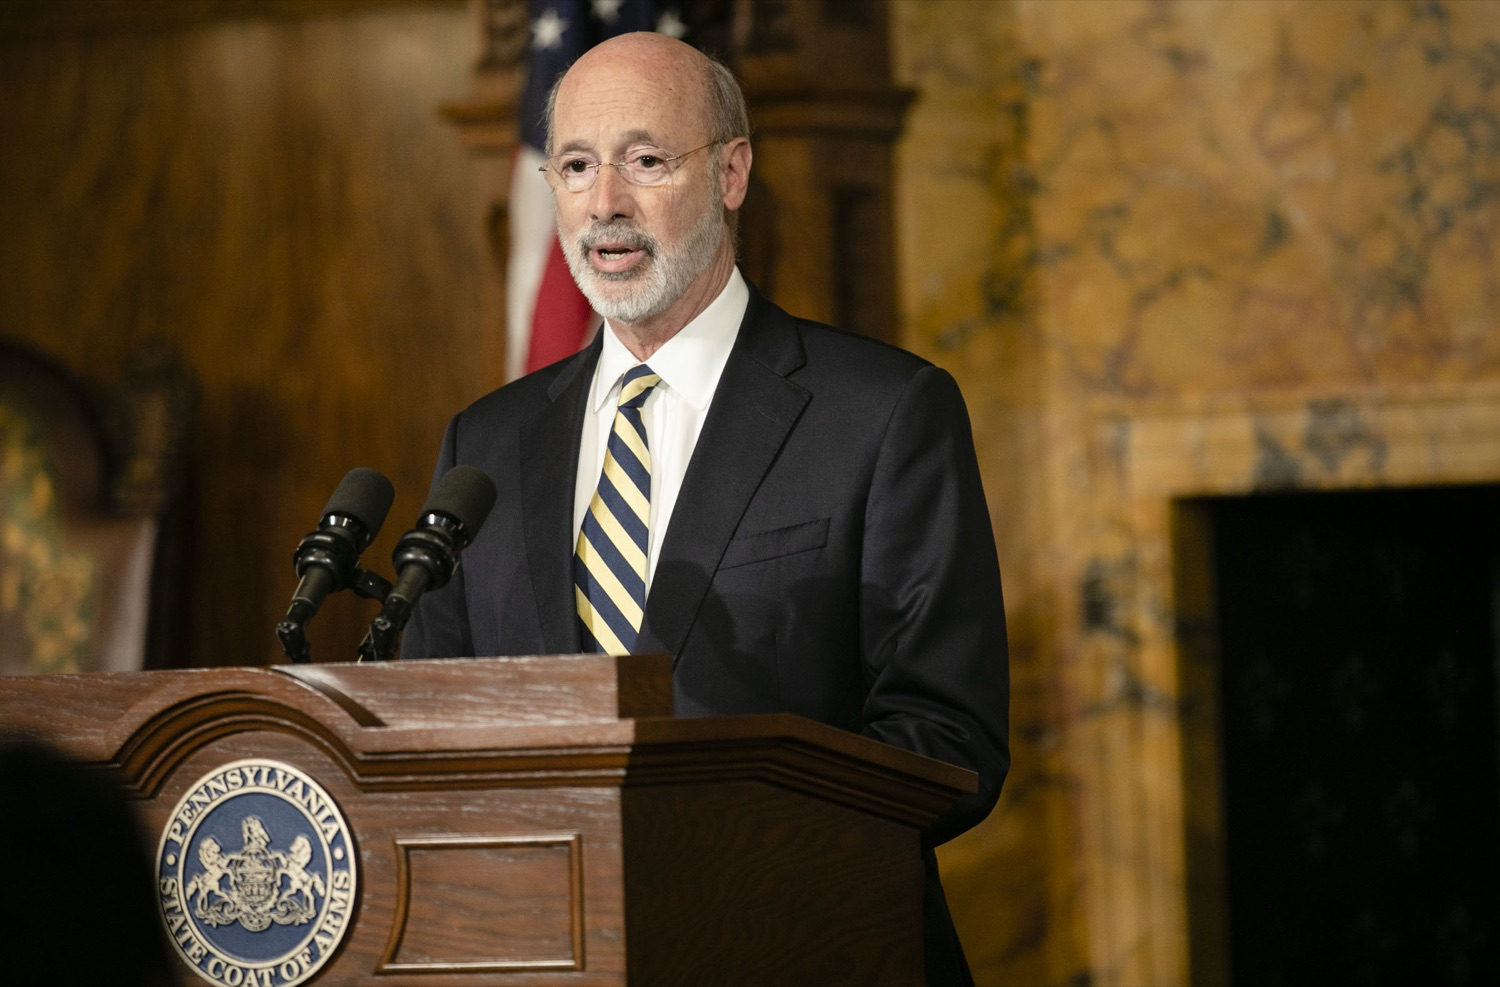 "<a href=""http://filesource.abacast.com/commonwealthofpa/photo/17564_GOV_aca_amb_005.jpg"" target=""_blank"">⇣ Download Photo<br></a>Governor Tom Wolf and Insurance Commissioner Jessica Altman advised Pennsylvanians that now is the time to buy health insurance on the federal exchange, healthcare.gov, as open enrollment continues for Affordable Care Act (ACA) plans through Dec. 15. Consumers have more options in Pennsylvania, and many will find they qualify for subsidies. November 7, 2019. Harrisburg, PA."